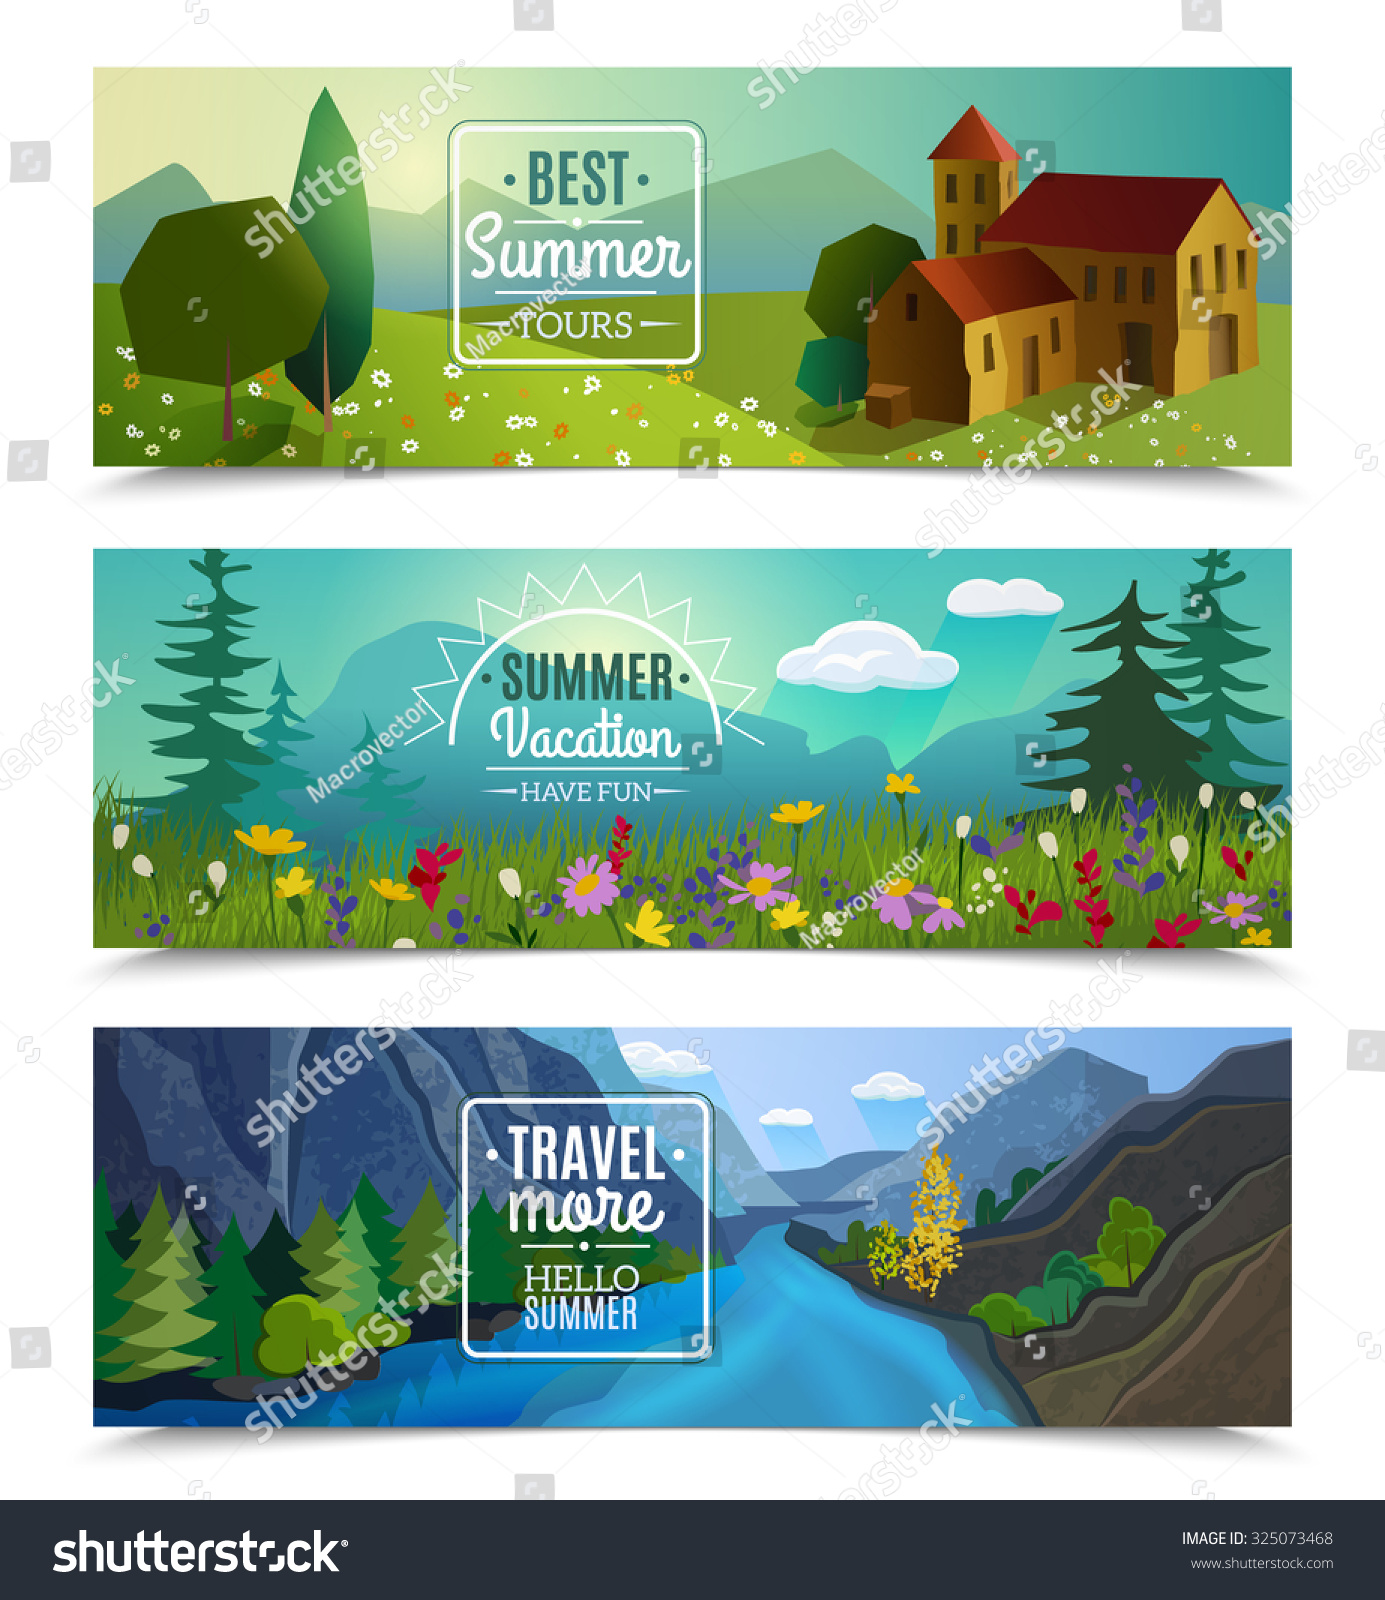 Best Tours For Summer Vacation Travel Agency Advertisement 3 Horizontal Landscape Banners Set Abstract Isolated Illustration